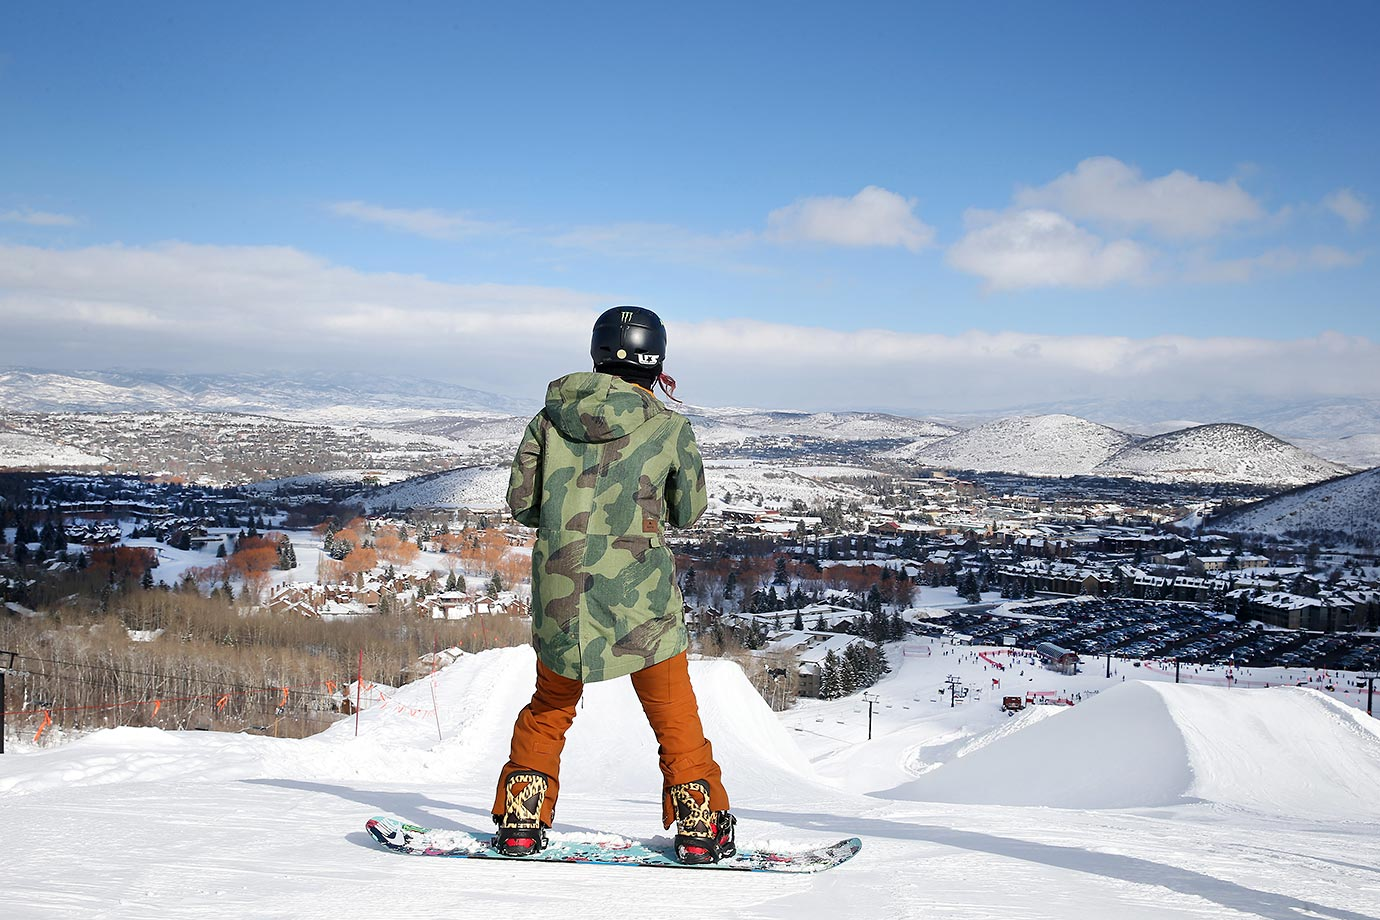 Snowboarder Chloe Kim surveys the mountain and the half pipe at Park City.